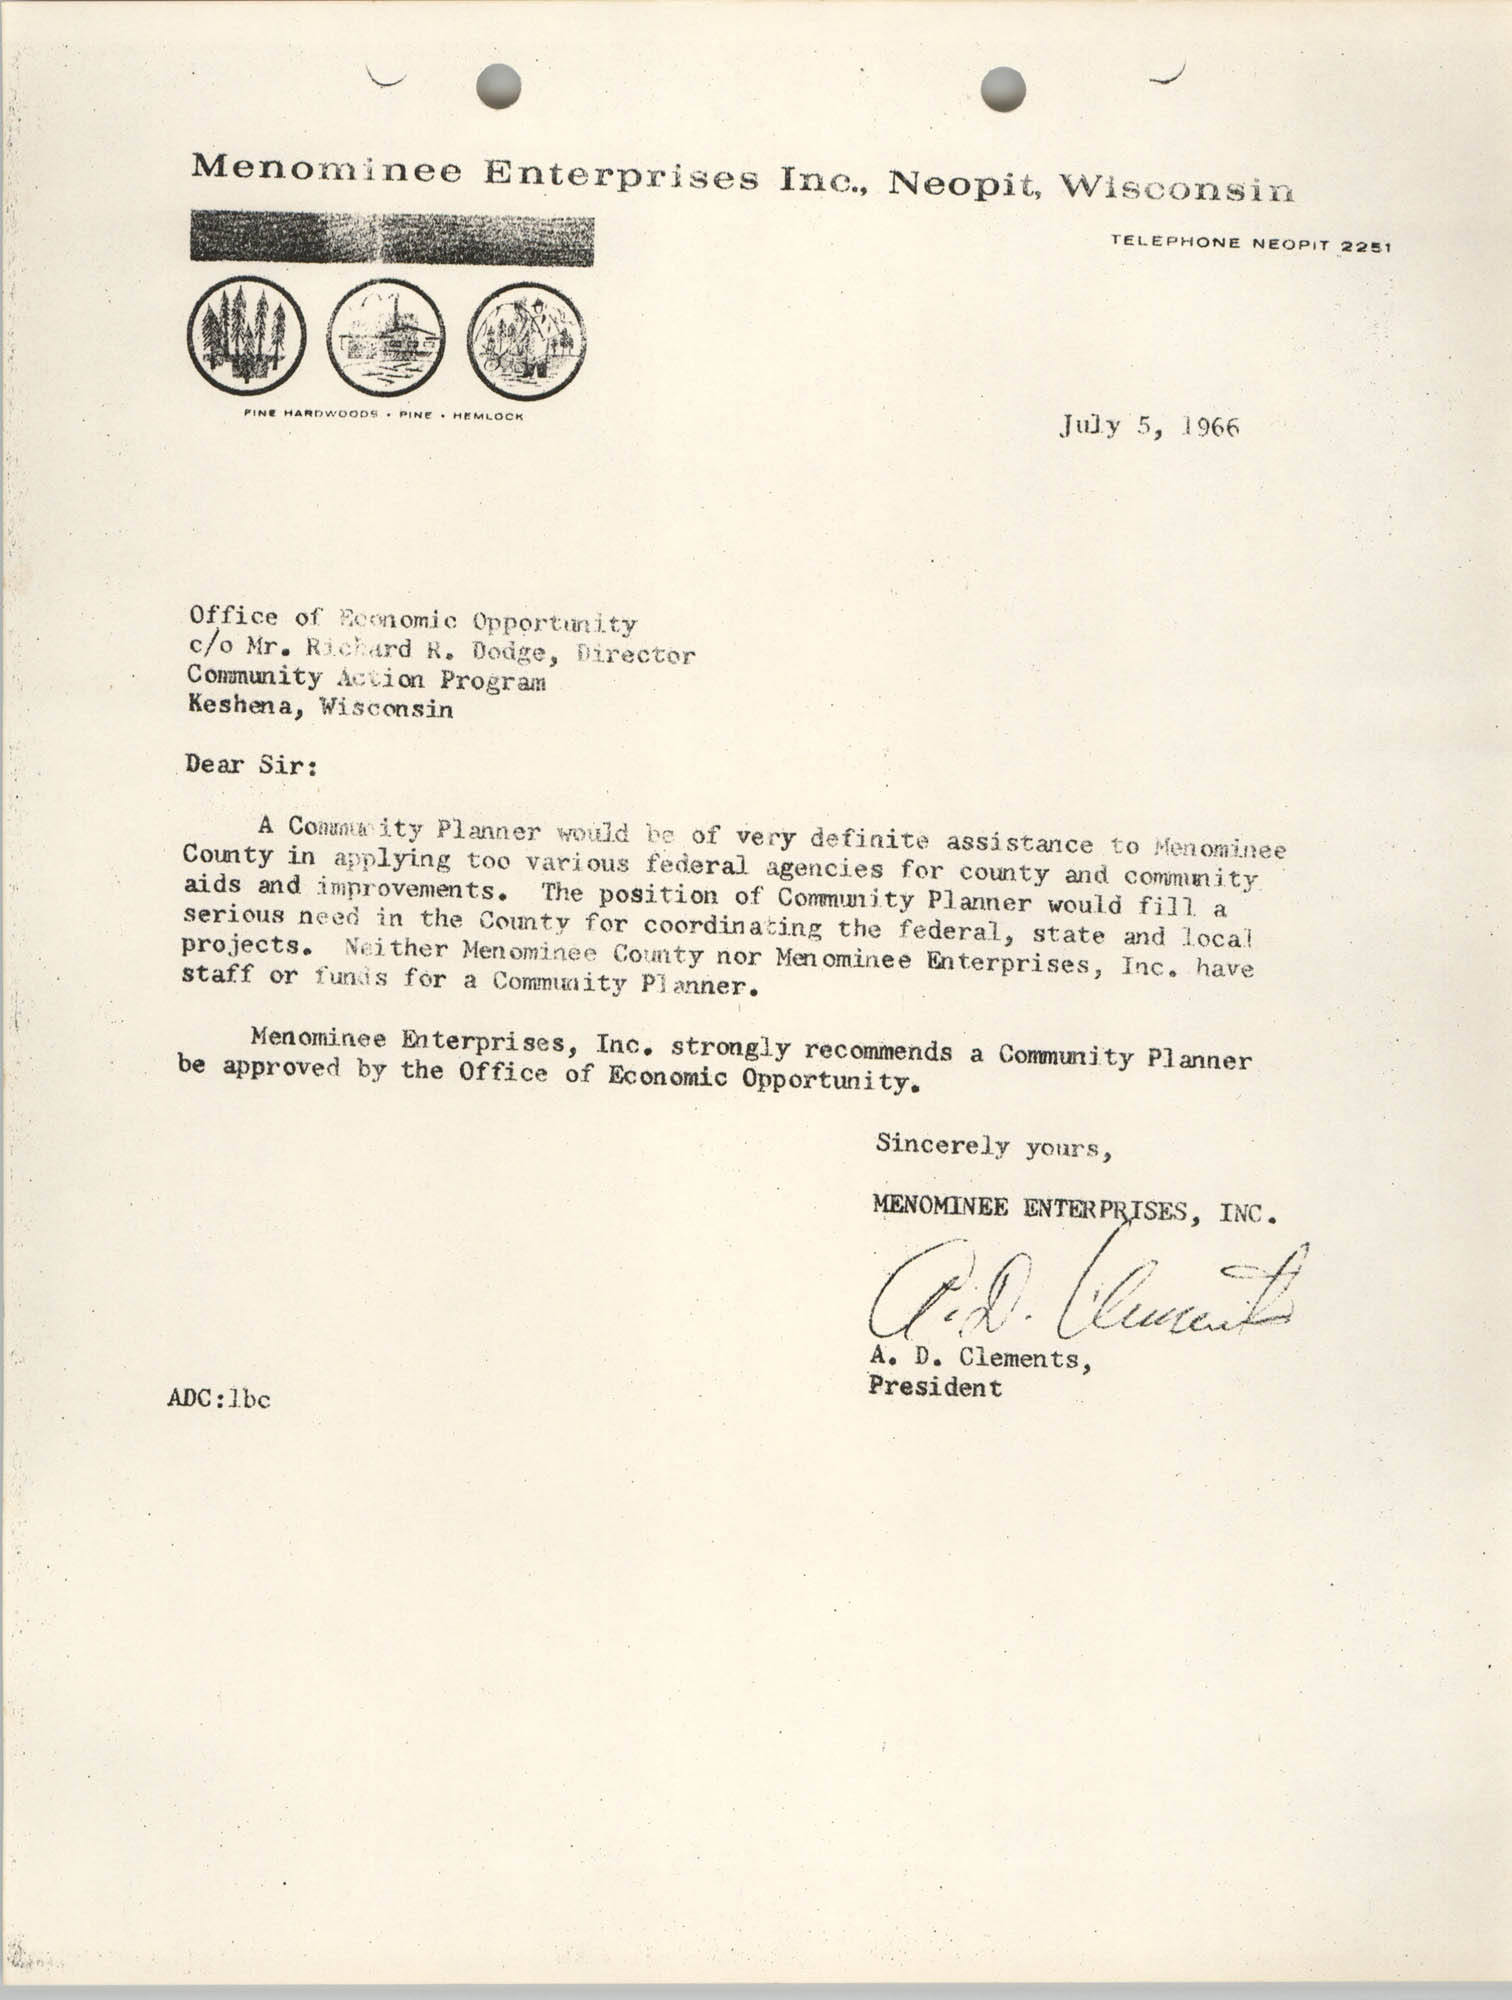 Memorandum from A. D. Clements to Office of Economic Opportunity, July 5, 1966